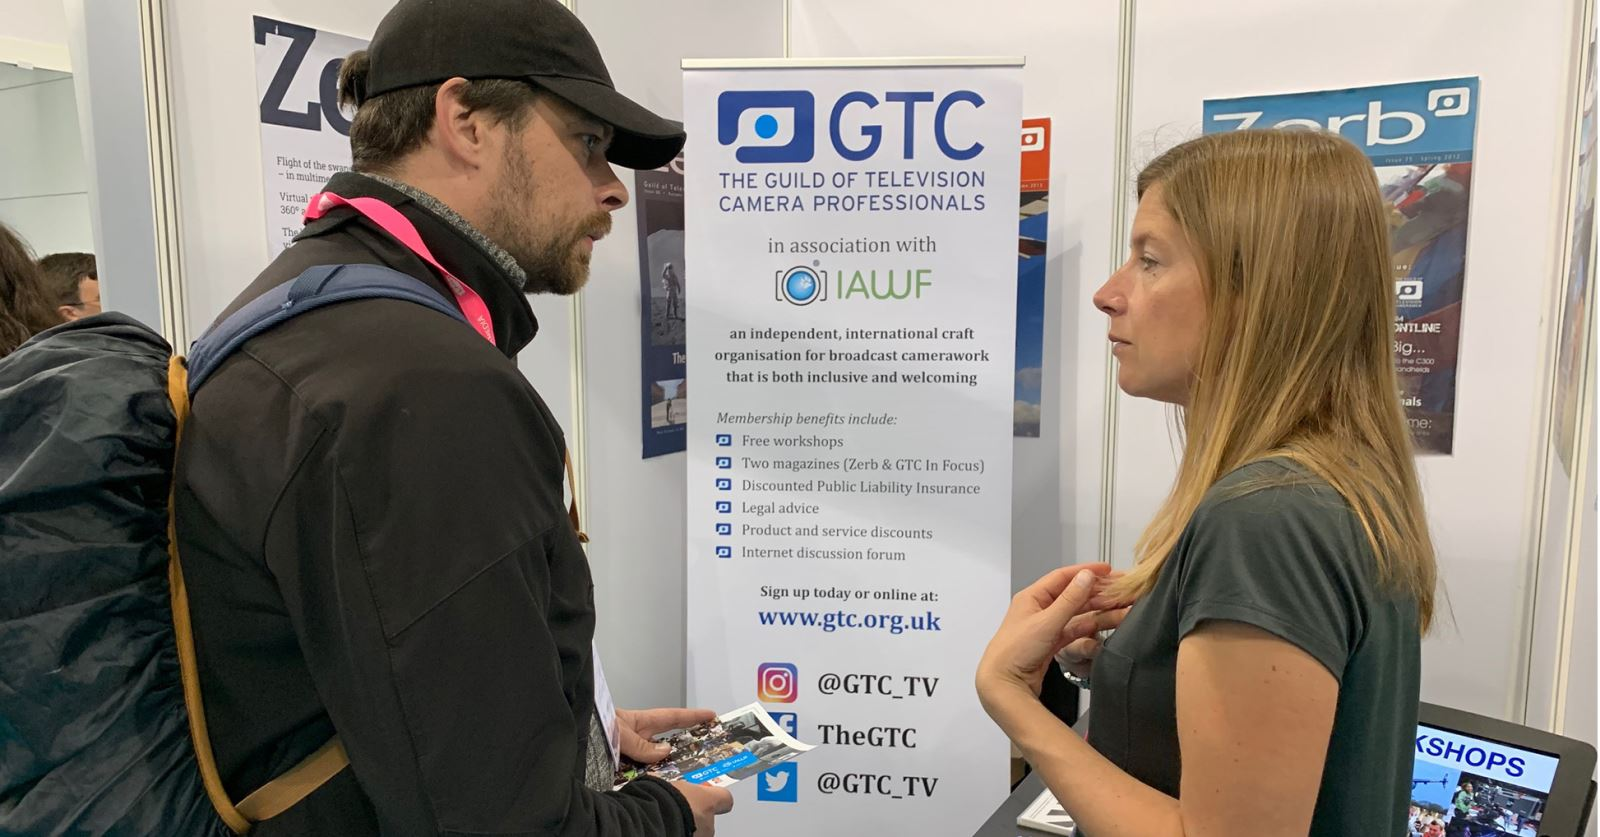 GTC Exhibitions Officer Kate Harvest explaining the many benefits of GTC membership - do visit the GTC at Stand 572